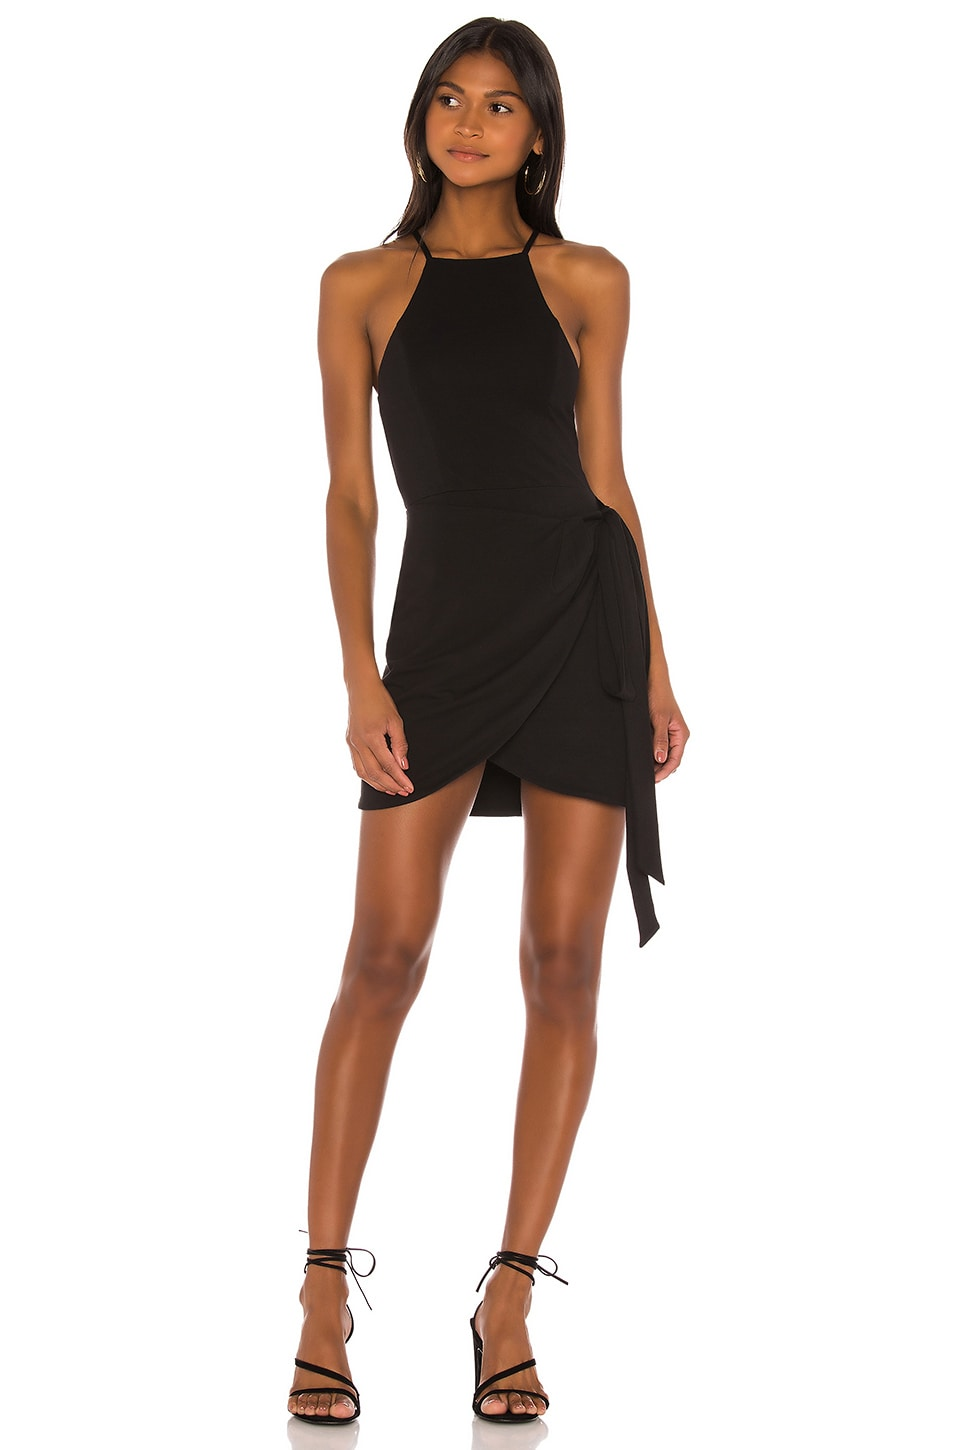 House of Harlow 1960 x REVOLVE Rya Dress in Black